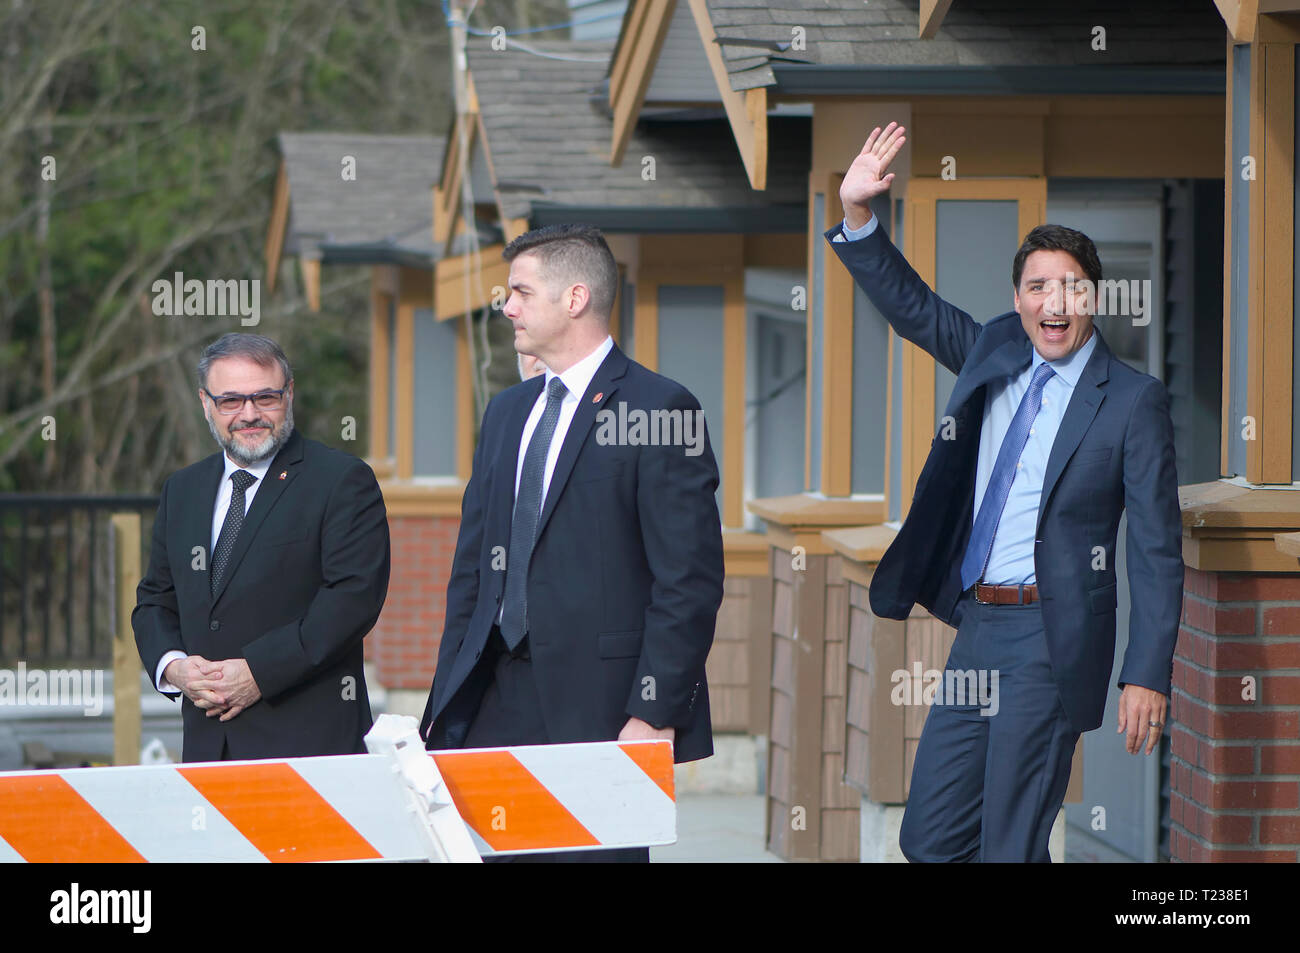 Canadian Prime Minister Justin Trudeau (waving) and Dan Ruimy, Ridge/Meadows MP representative in the House of Commons (left). Security in center. Stock Photo